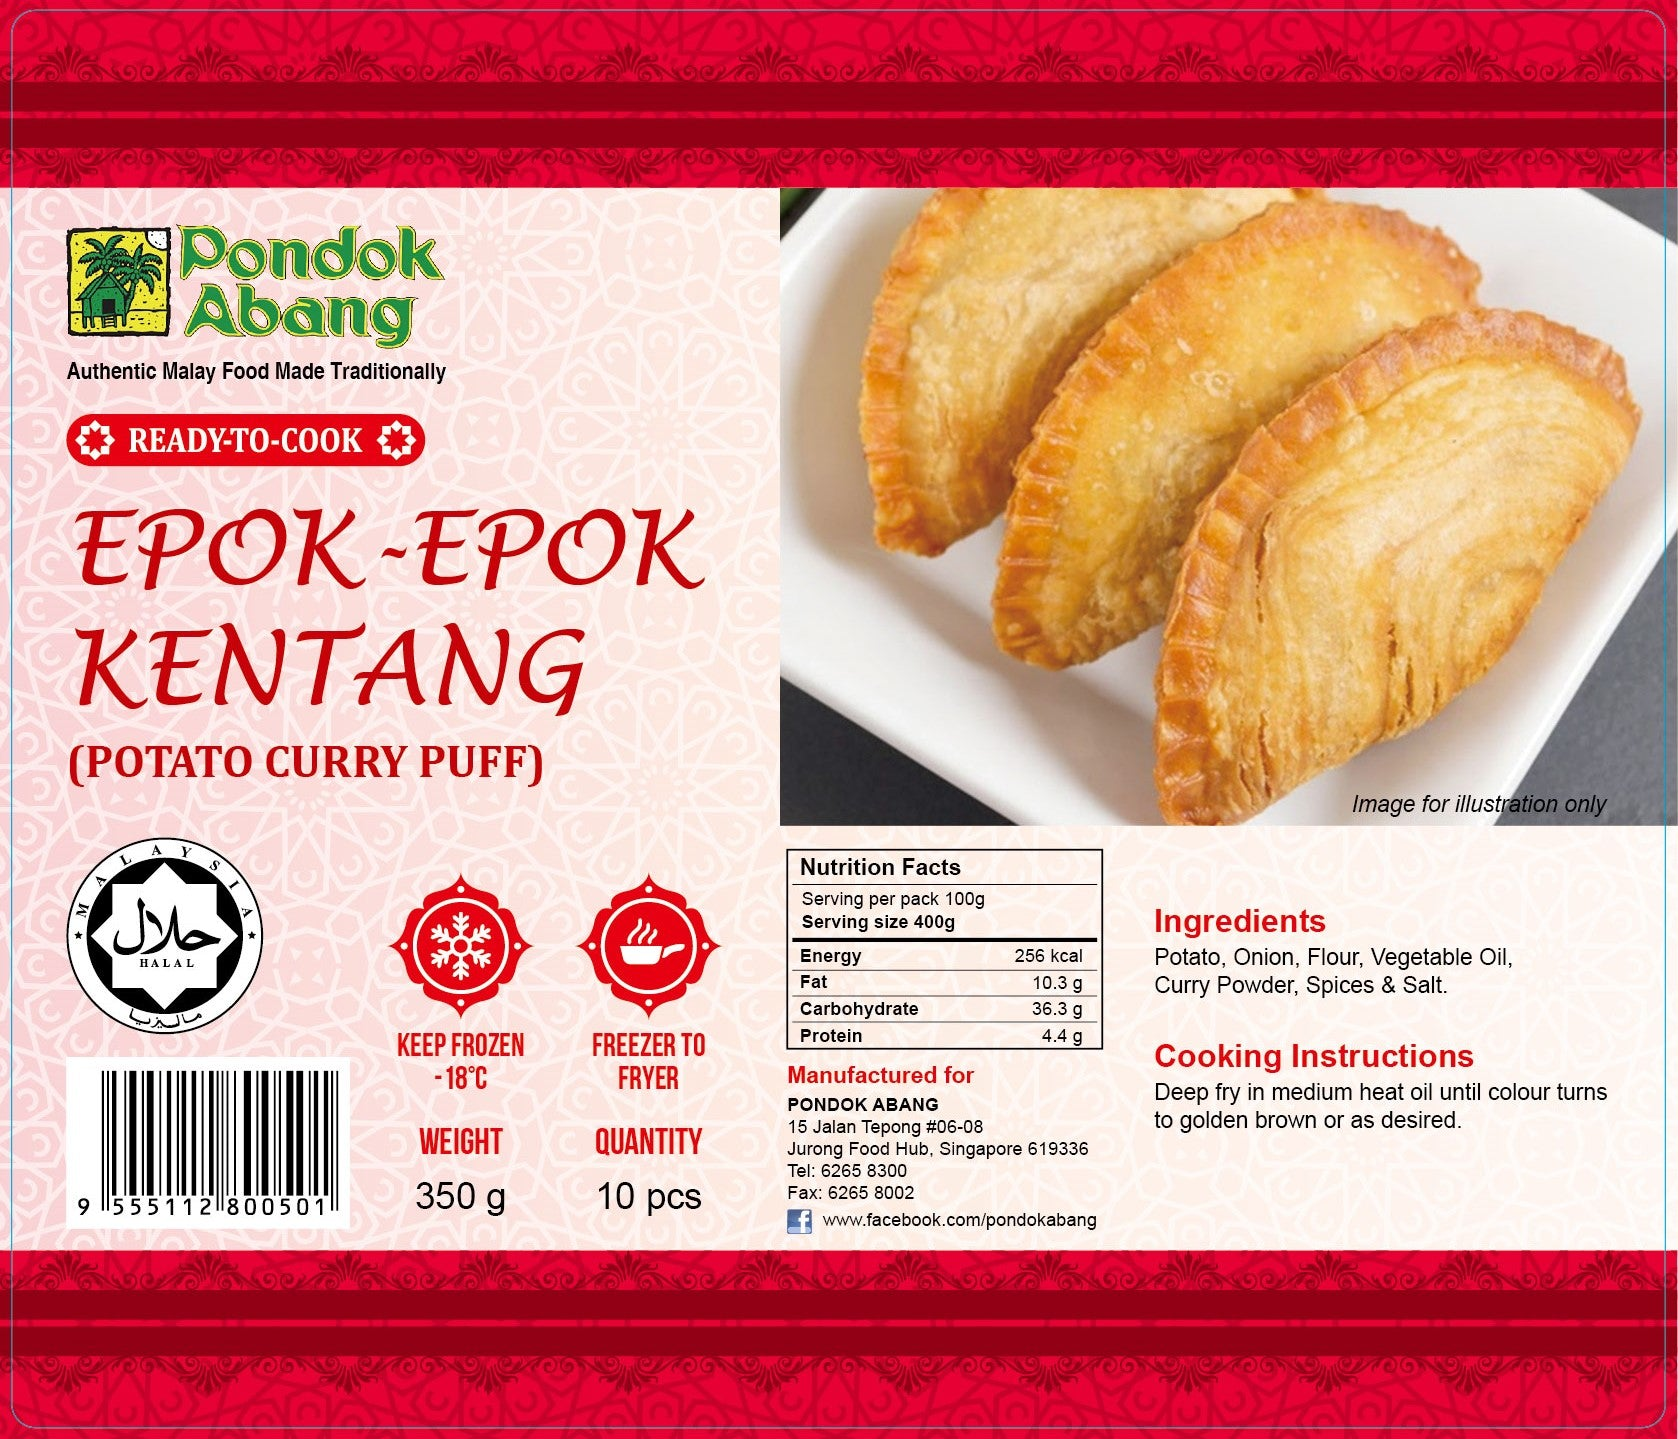 Potato Curry Puffs 10pcs (Epok-Epok Kentang 10pcs)